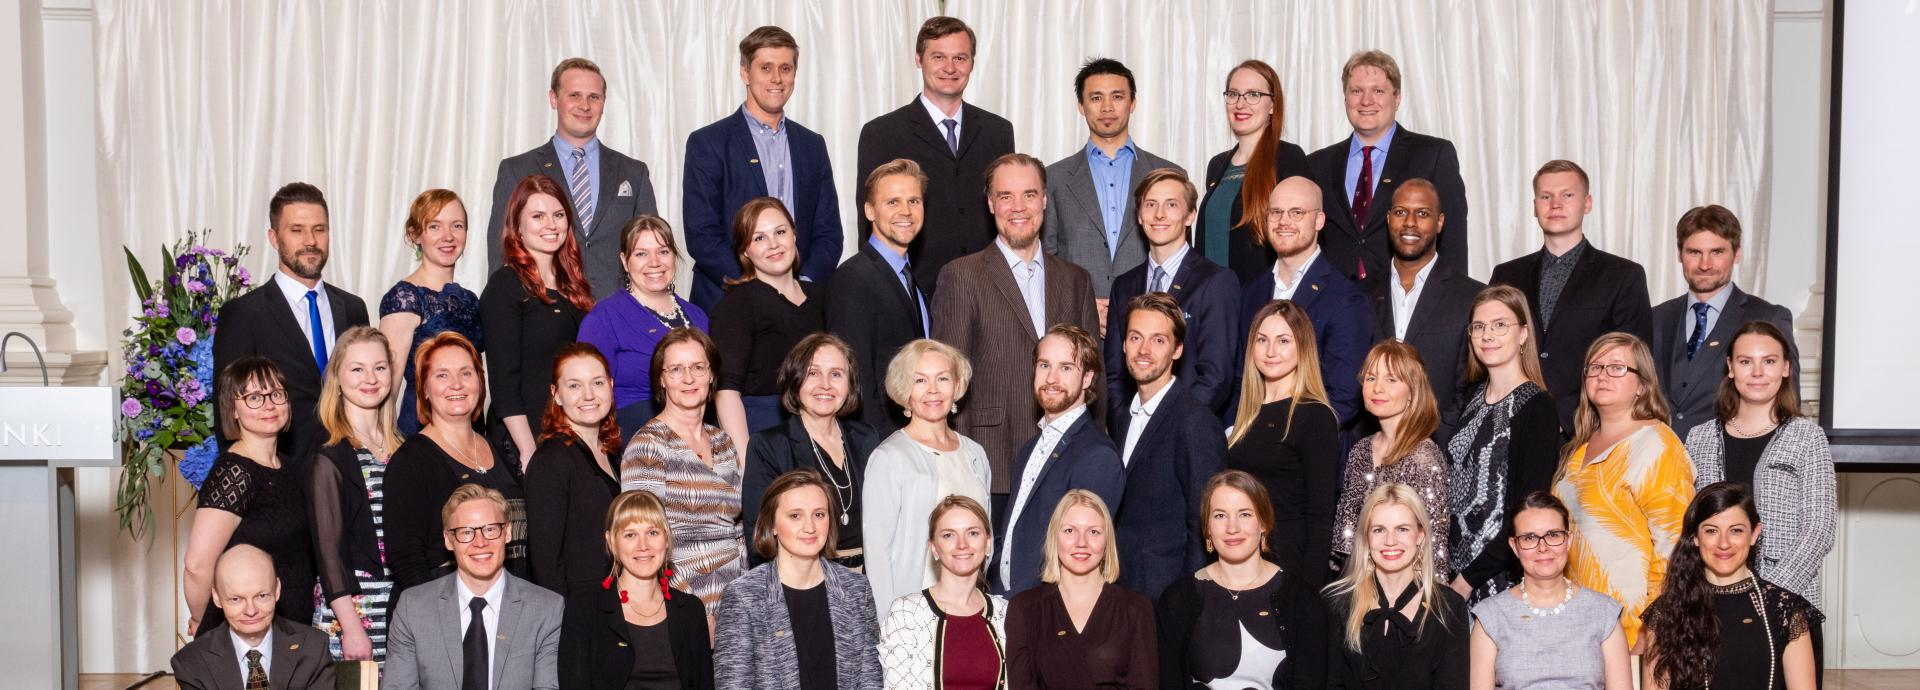 Group photo of the Finnish Fulbright grantees going to the U.S. in 2019-2020